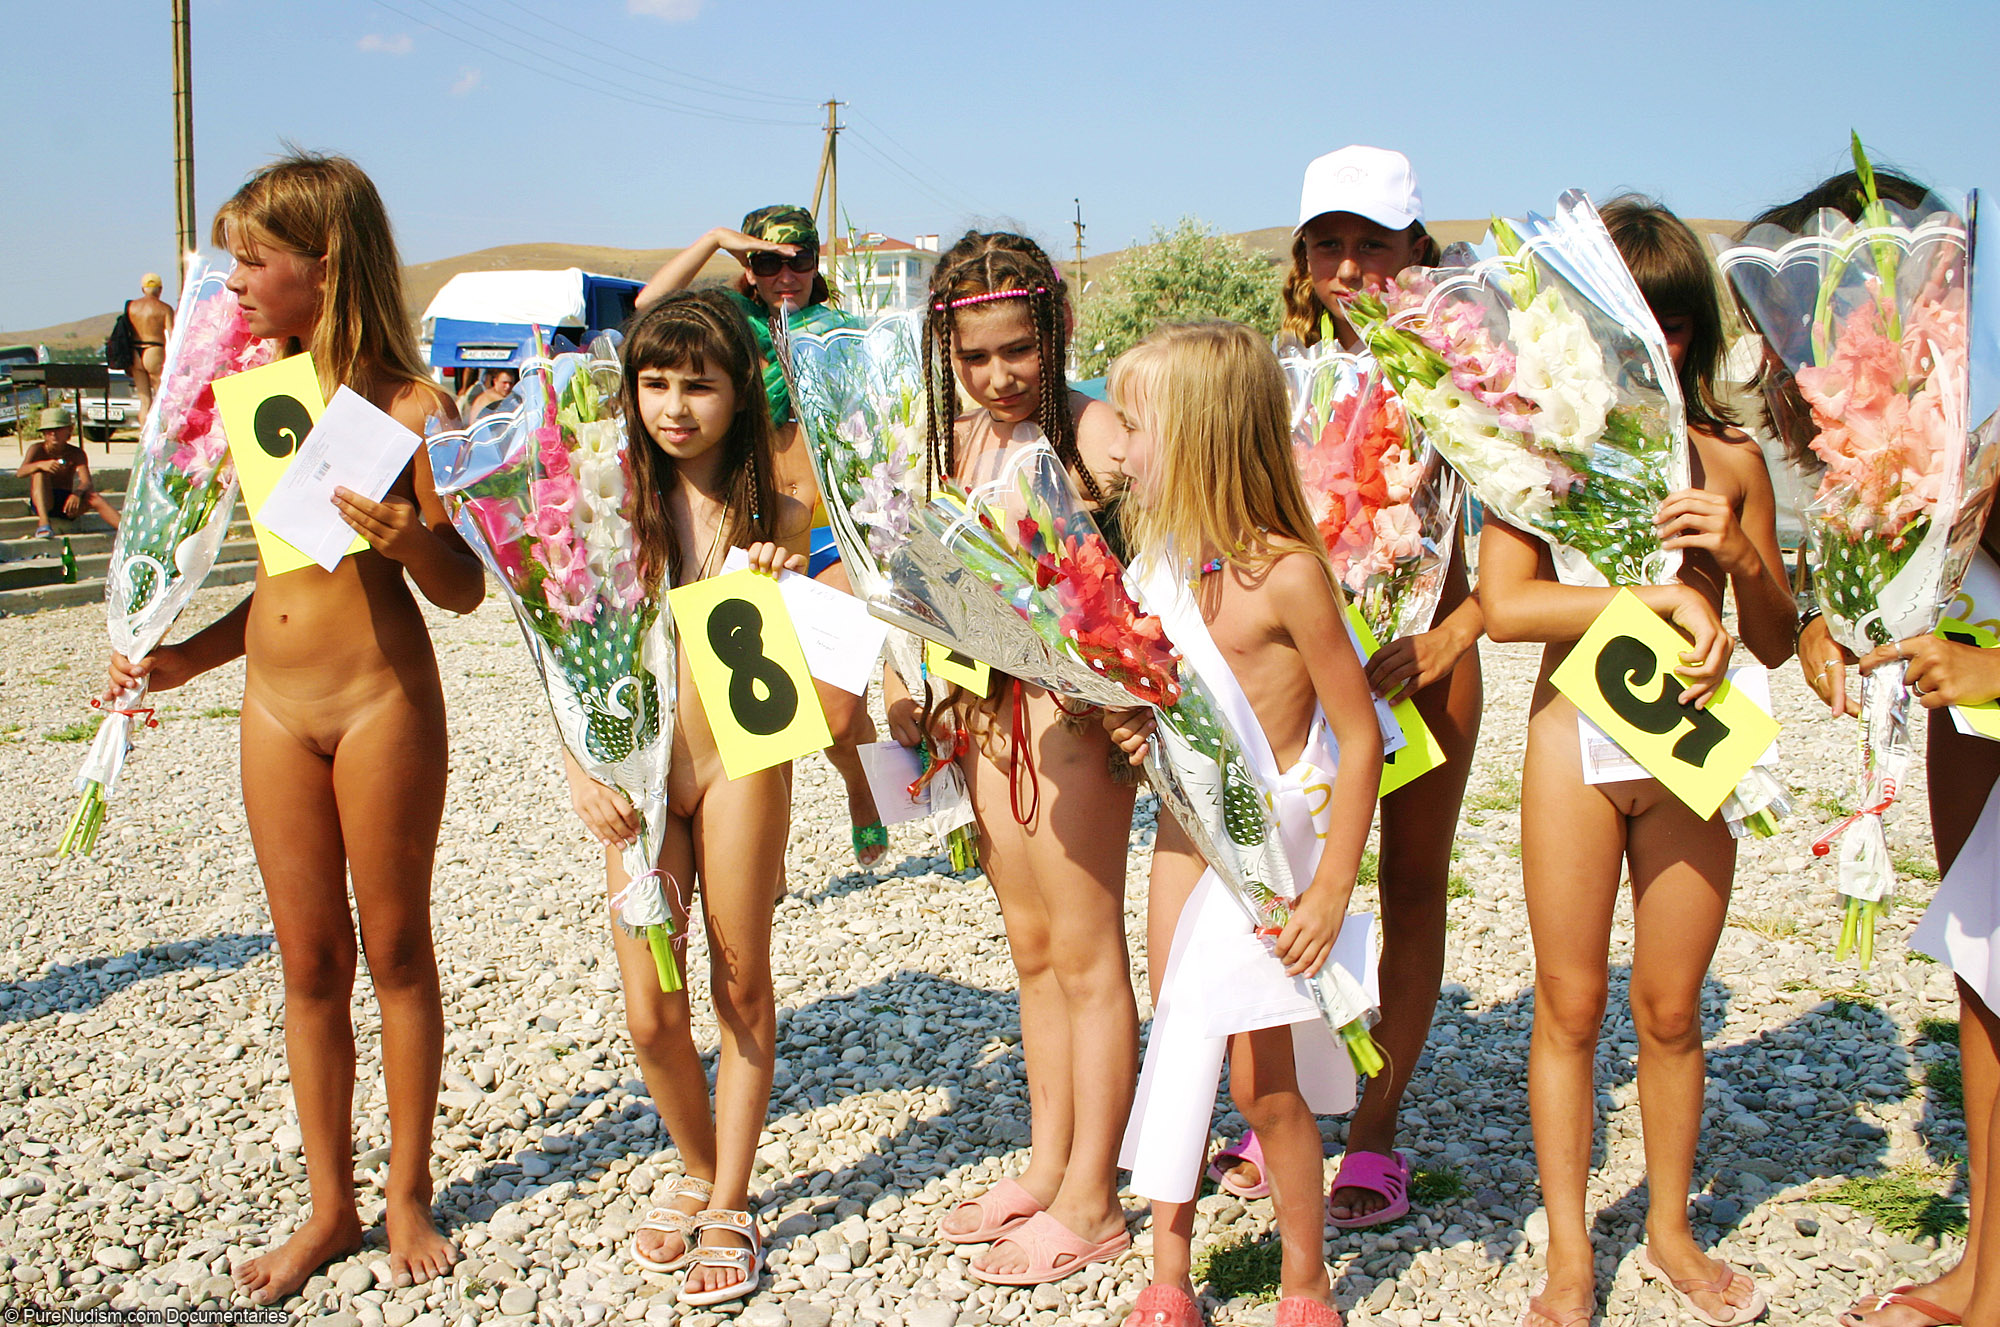 miss junior nude peagant COM - Girl Winners In Our Miss Naturist Contest Picture